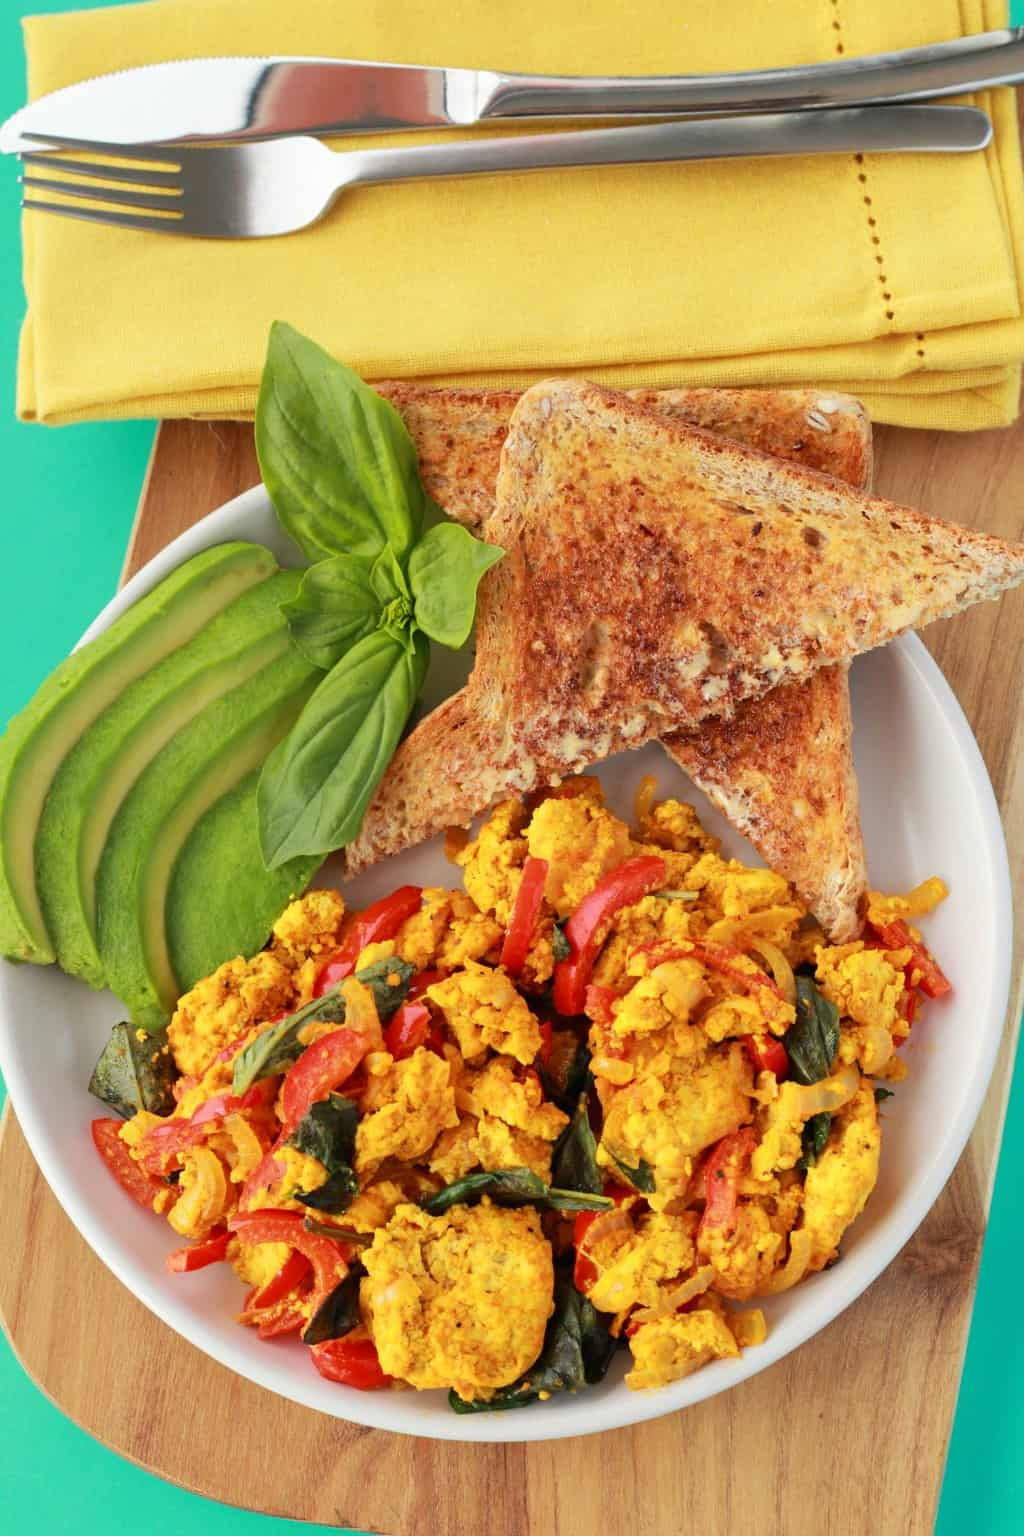 Tofu Scramble on a white plate with toast triangles, fresh basil and sliced avocado, a yellow napkin and cutlery in the background.